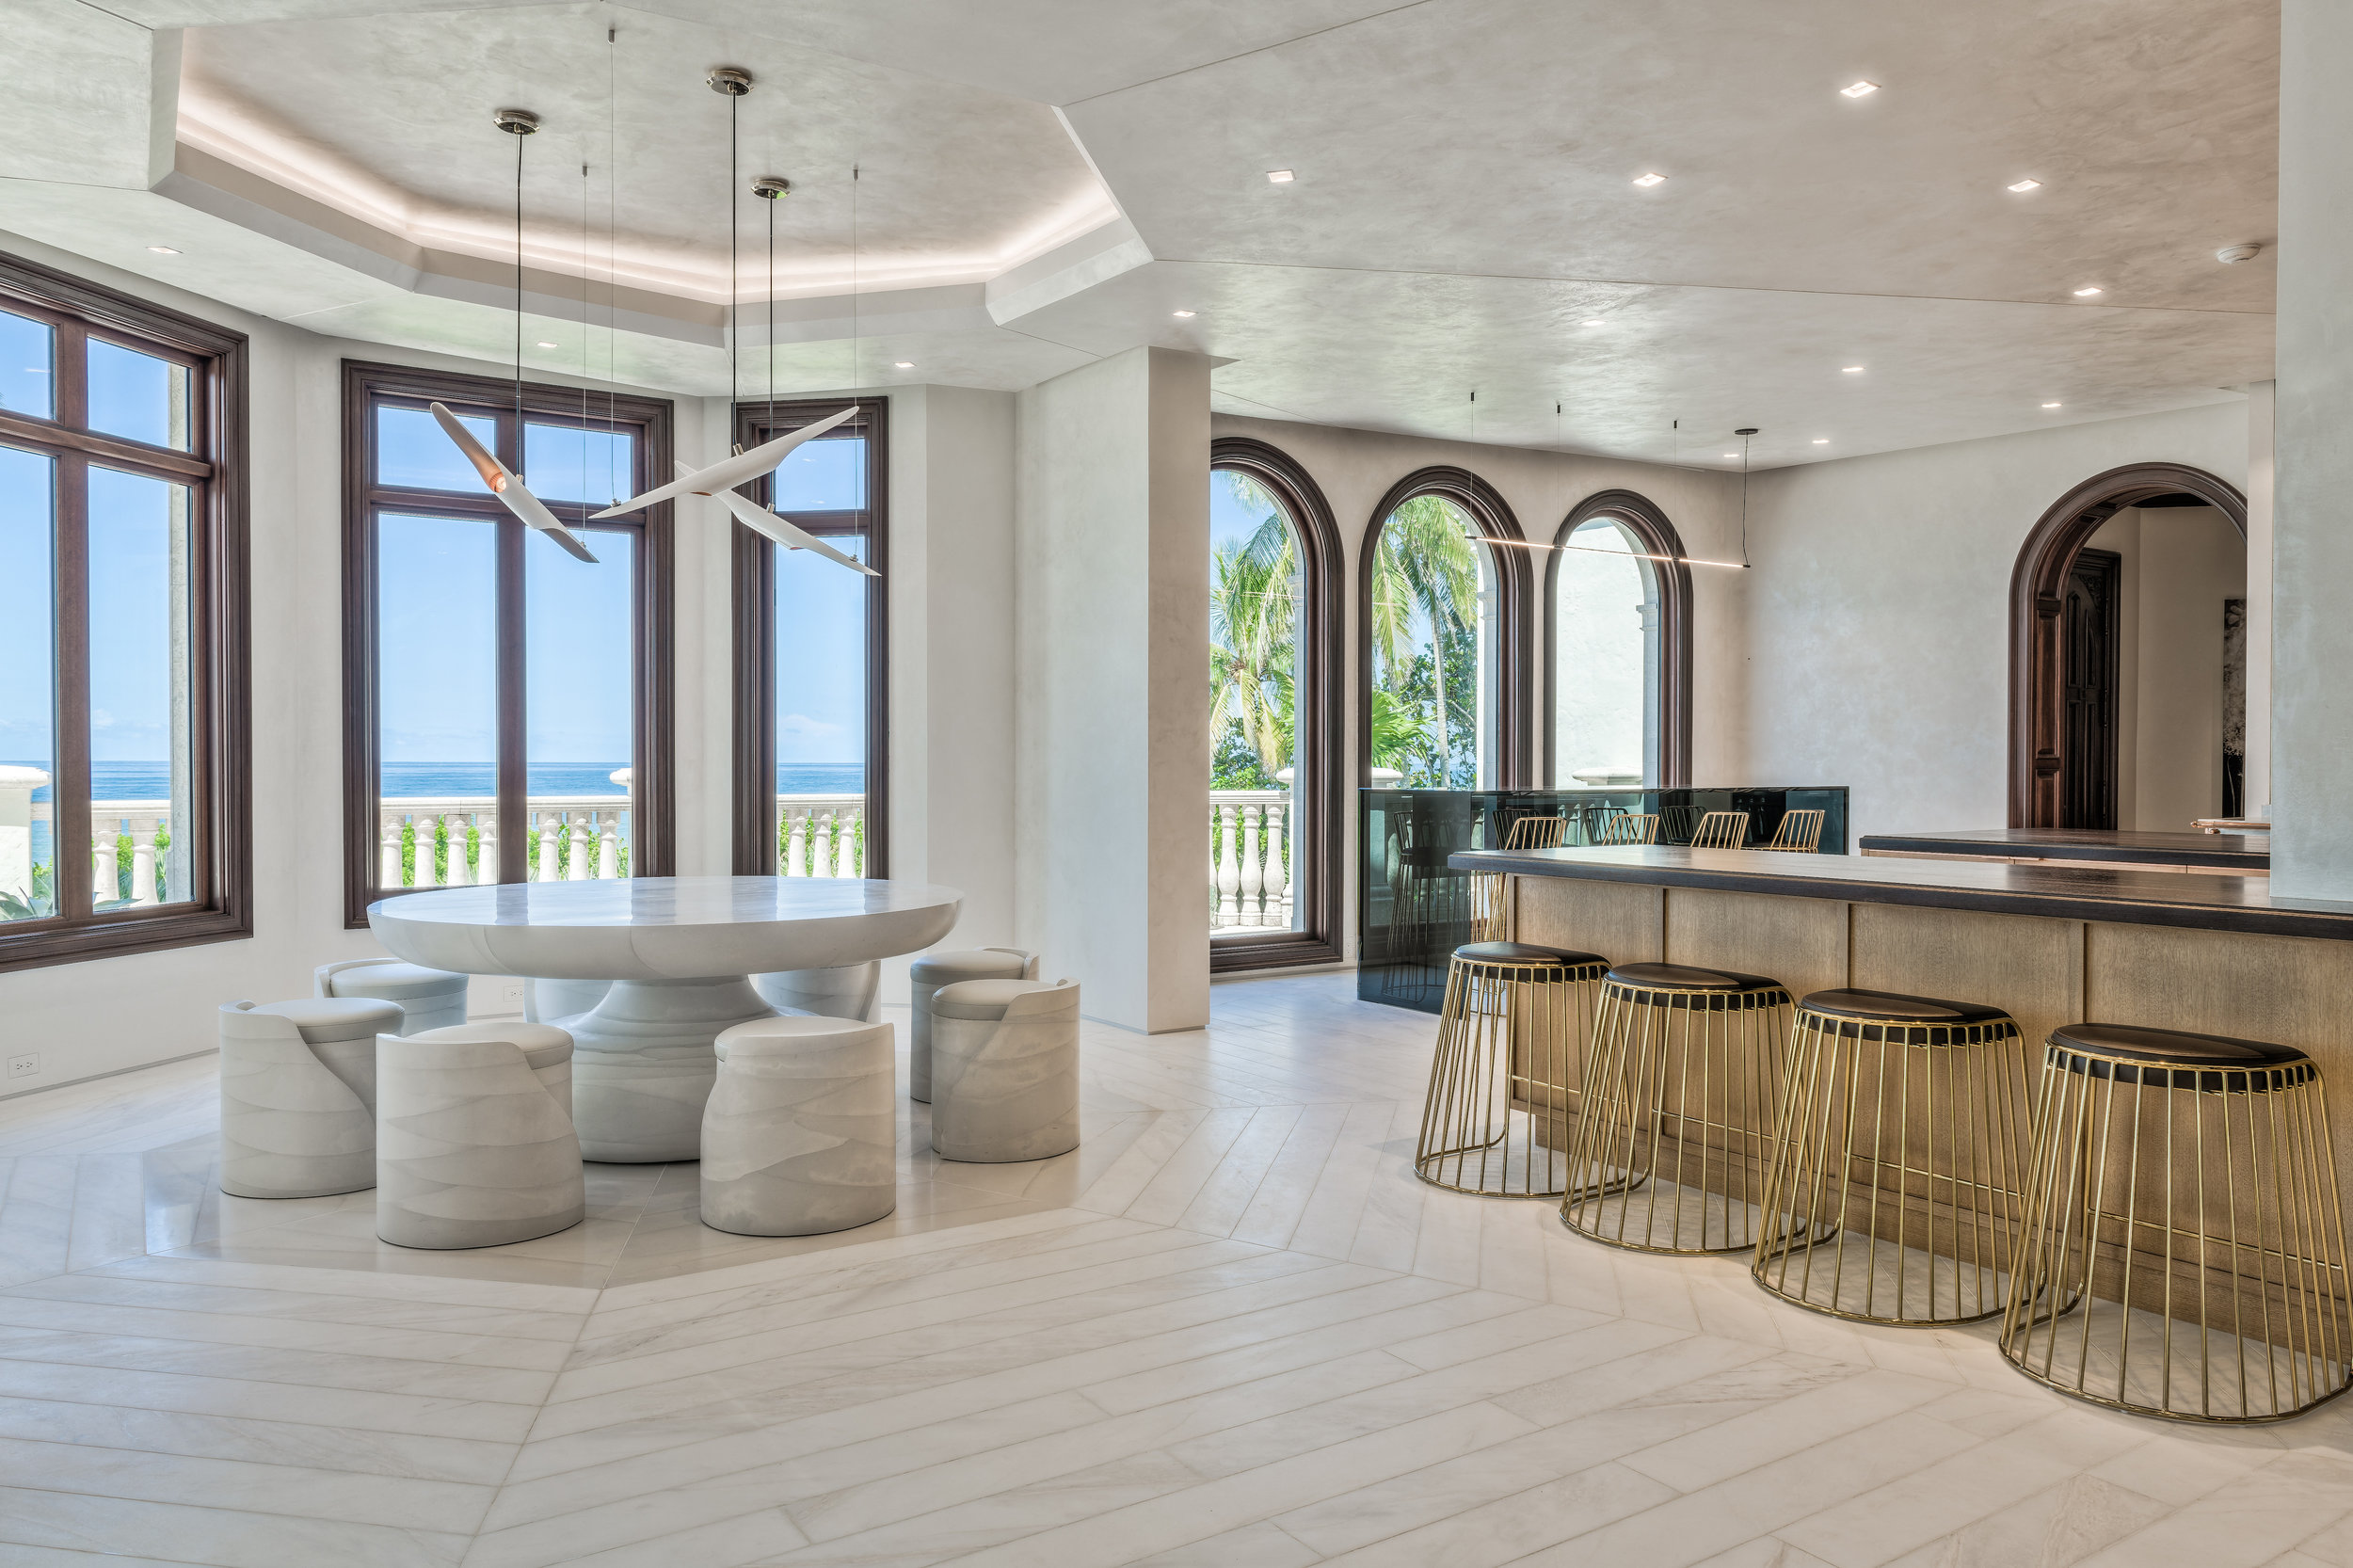 Private Beachfront Estate Kitchen Nook Overlooking a sprawling oceanic view, this room features masterfully inset stone flooring, complex angular ceiling architecture, and artisan applied finishes. The crown jewel of the space is a spectacular cast concrete dining set commissioned by designer Chad Jensen, complimented with a chandelier inspired by birds in flight.